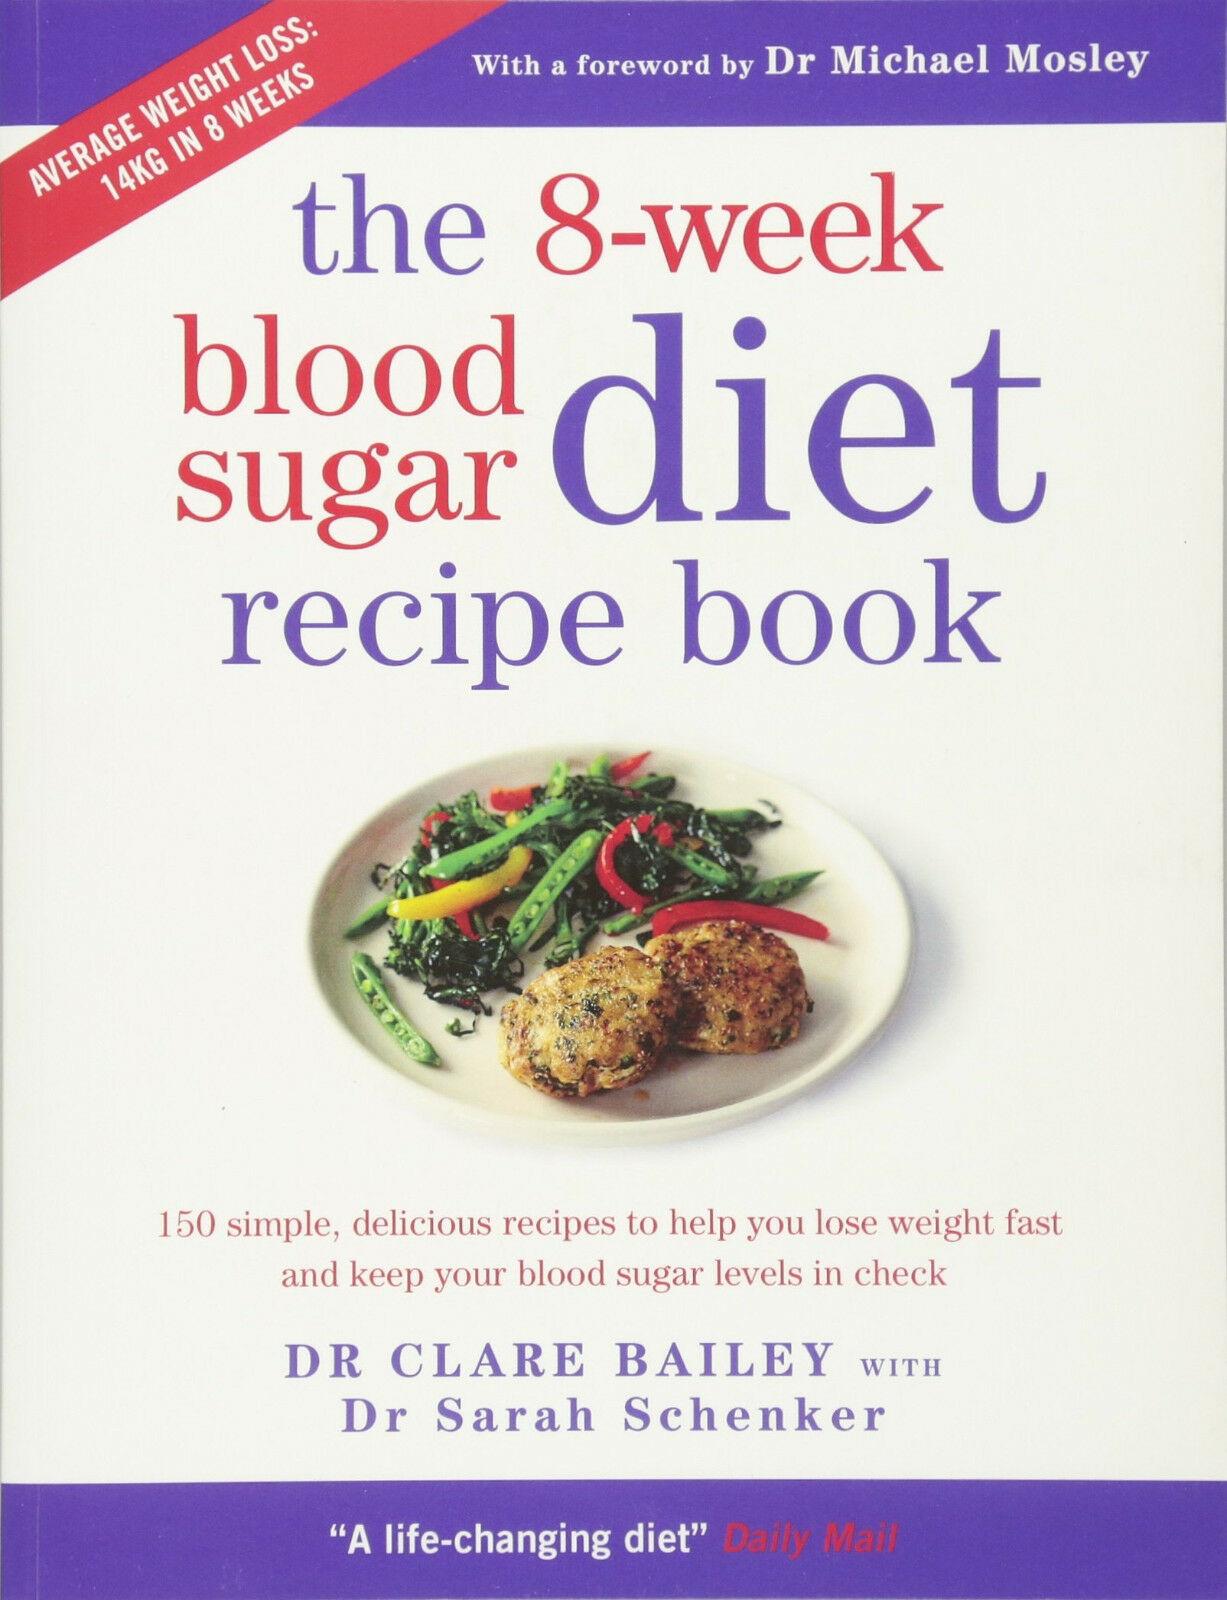 The 8 week blood sugar diet recipe book by clare bailey paperback the 8 week blood sugar diet recipe book by clare bailey paperback 2016 ebay forumfinder Images